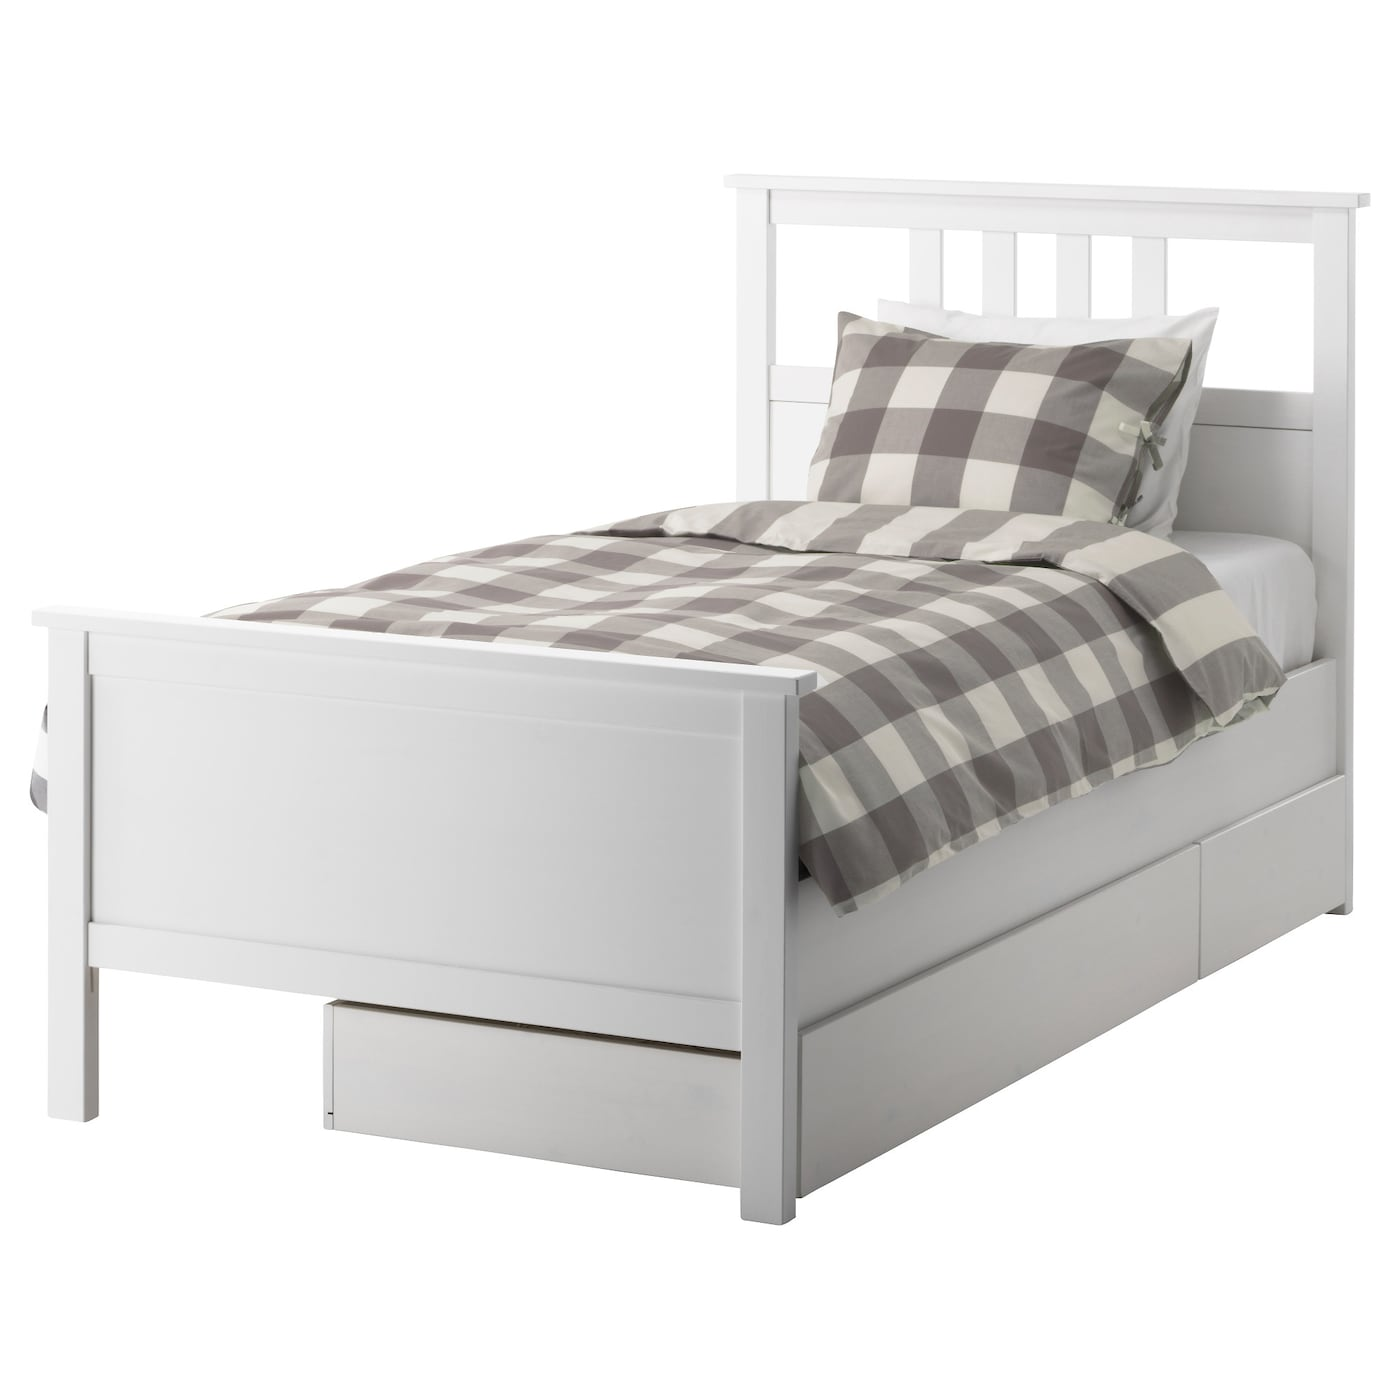 hemnes bed frame with  storage boxes white stainluröy standard  - ikea hemnes bed frame with  storage boxes